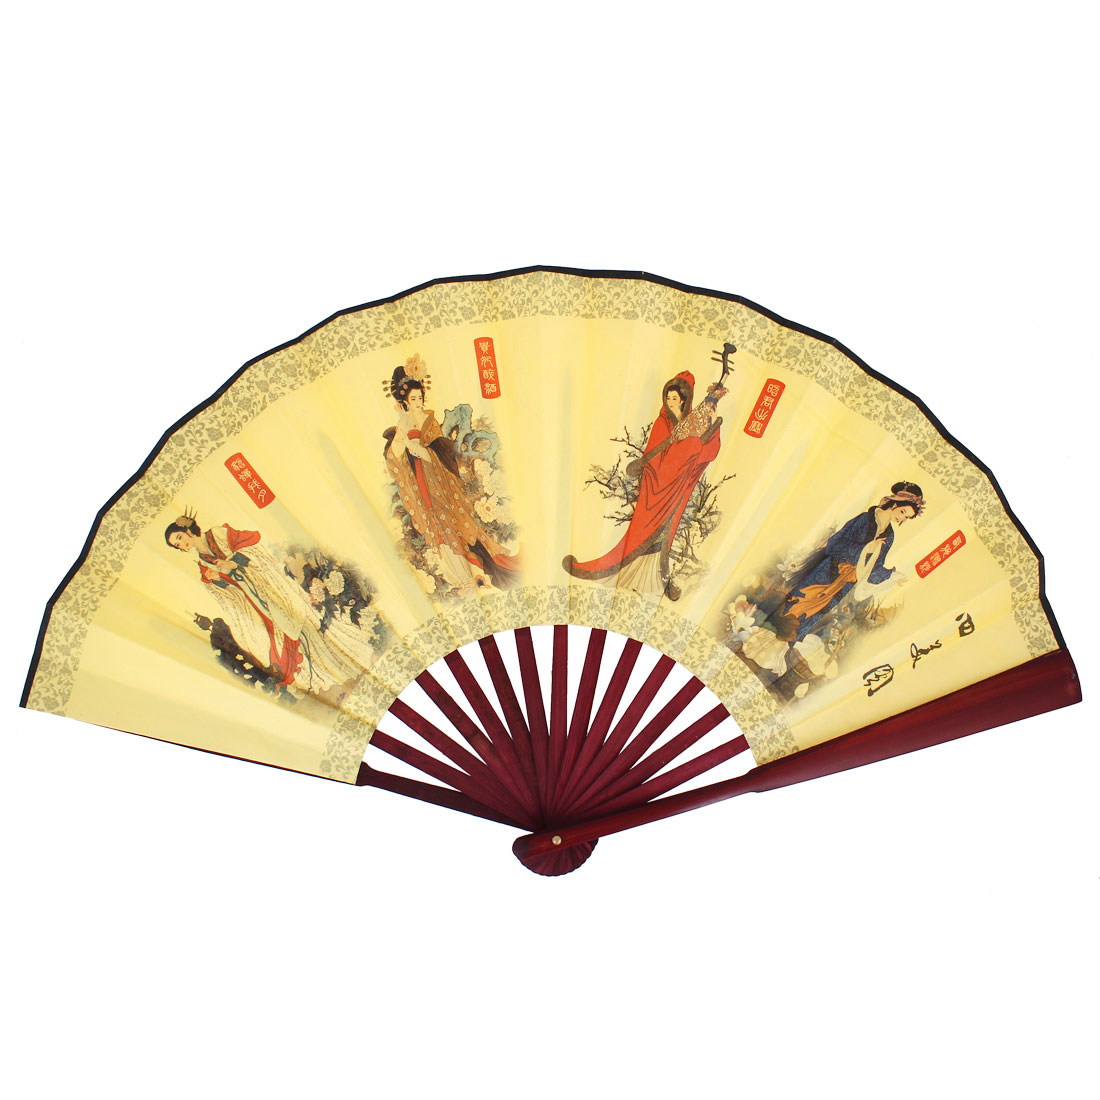 Bamboo Frame The Four Ancient Beauties Printed Folding Hand Fan Yellow